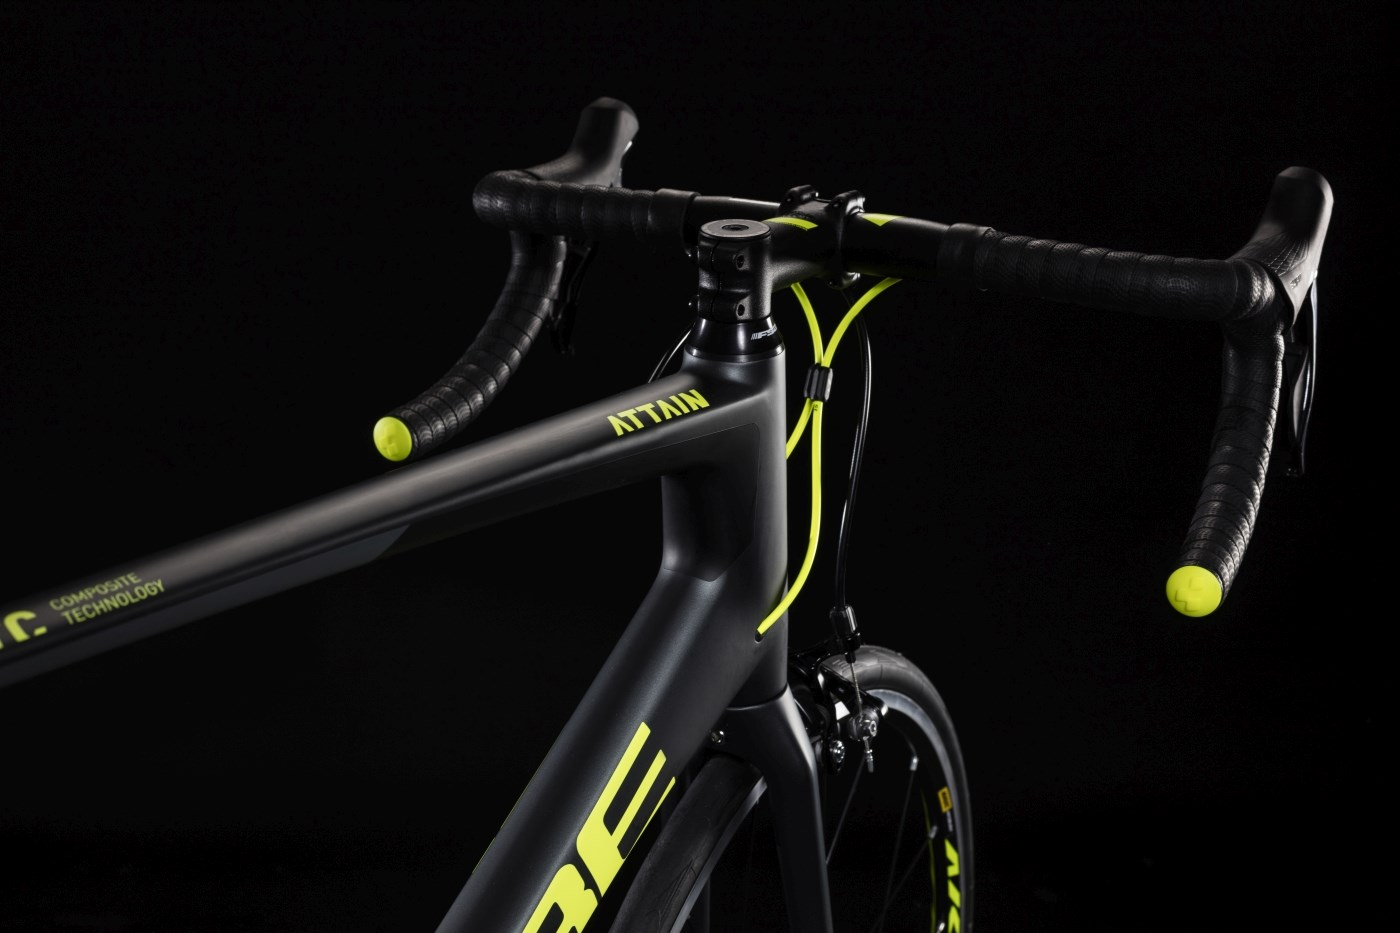 Fair Trading Licence Check >> 2019 Cube Attain GTC Pro Carbon Road Bike in Grey £1,119.00